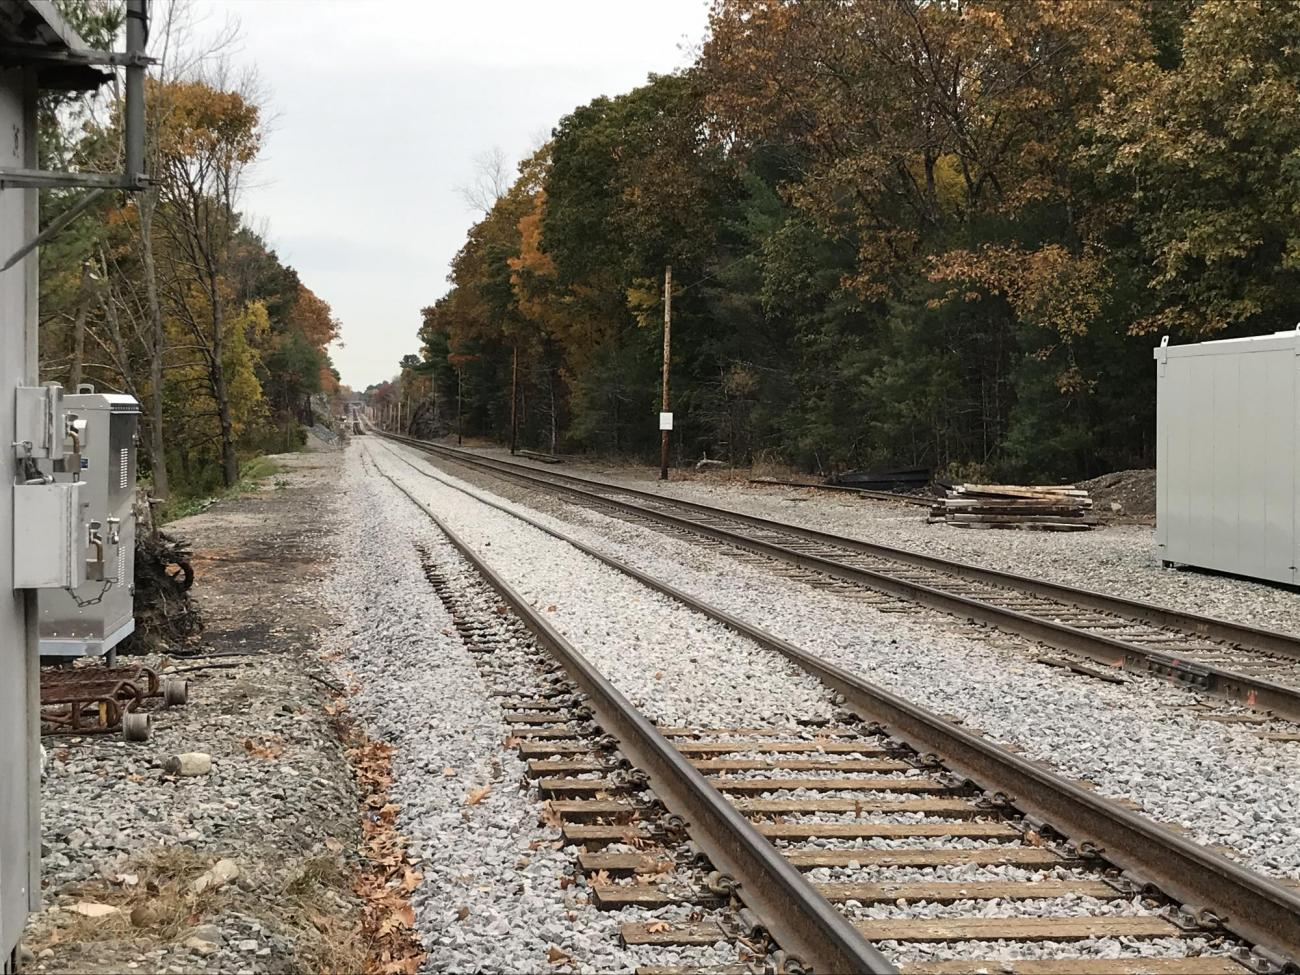 Stone ballast was placed on the tracks before being leveled out by the tamping machine (October 2019)